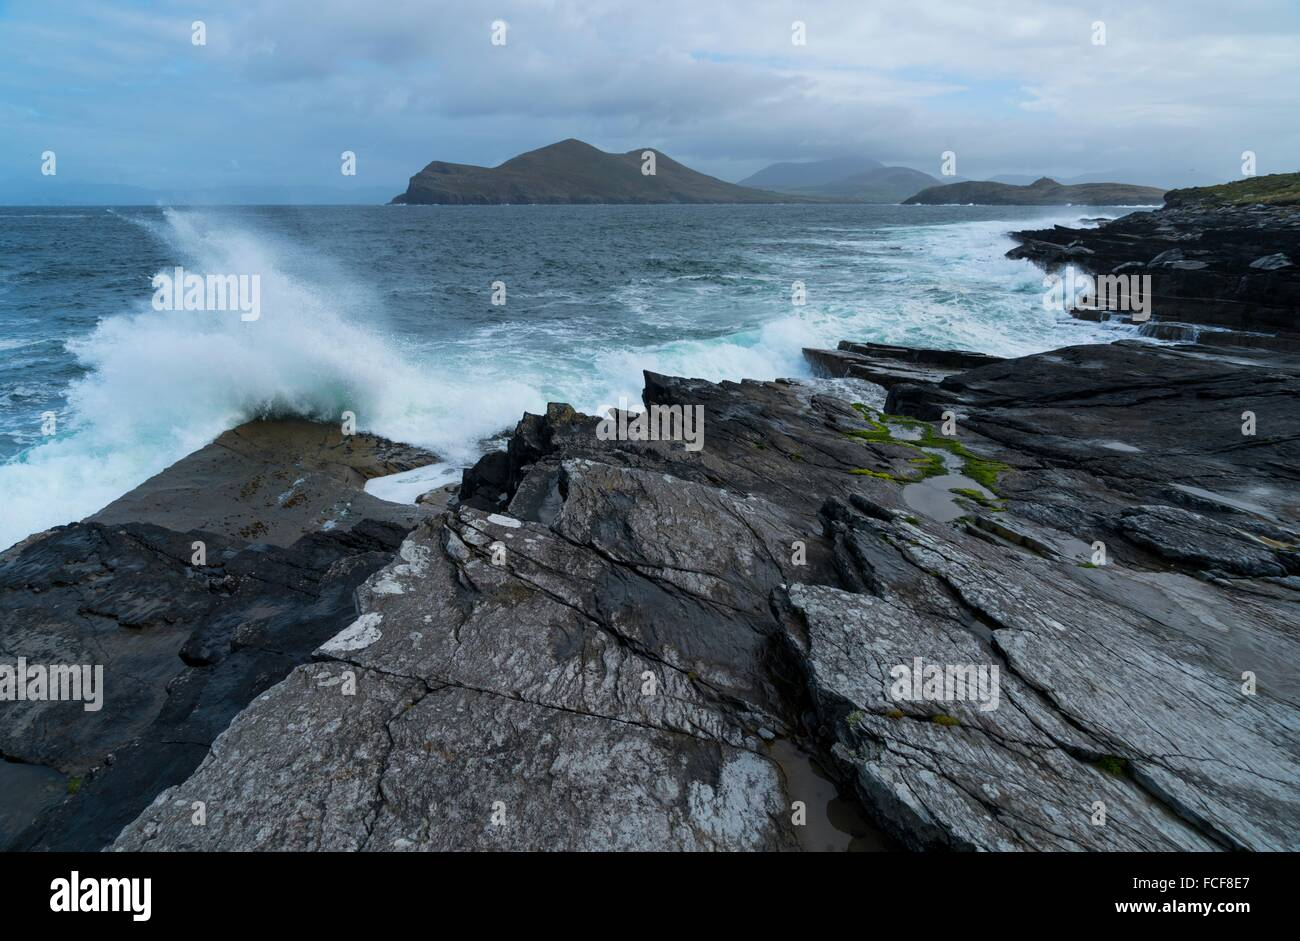 Tetrapod footprints, Valentia Island, Iveragh Peninsula, County Kerry, Ireland, Europe. - Stock Image